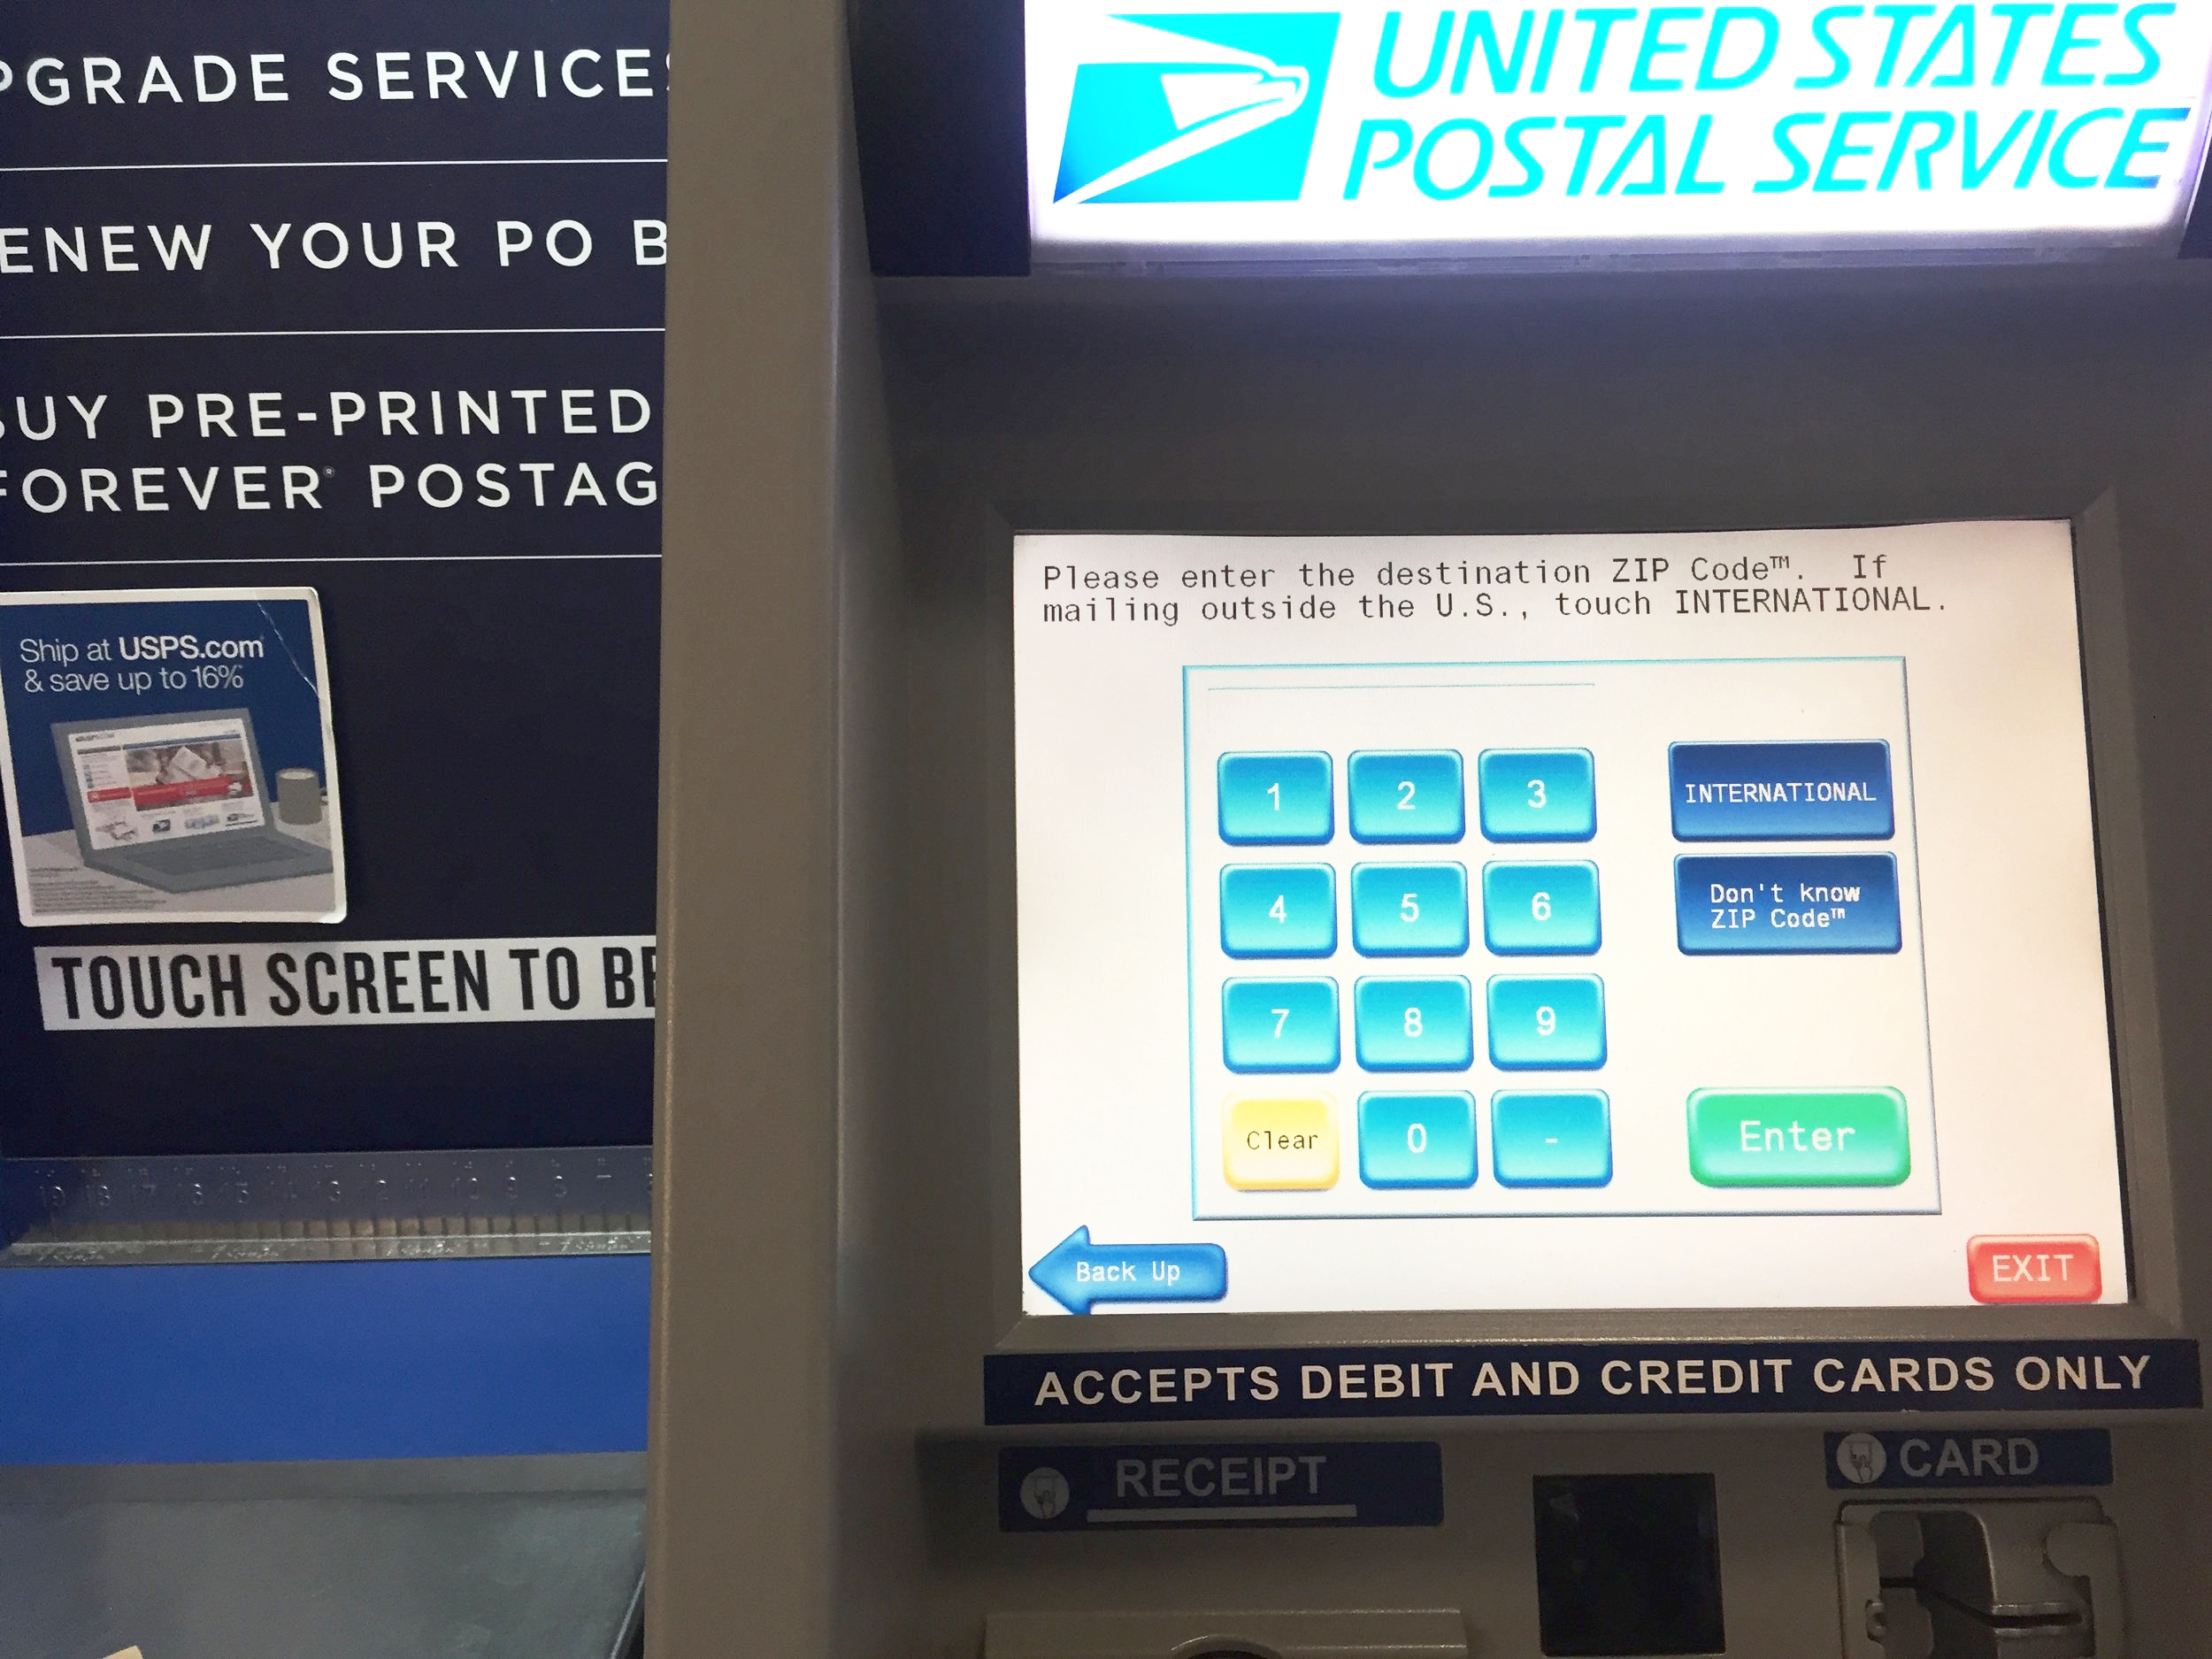 A post office self-service machine. UI circa 1982, still in production.